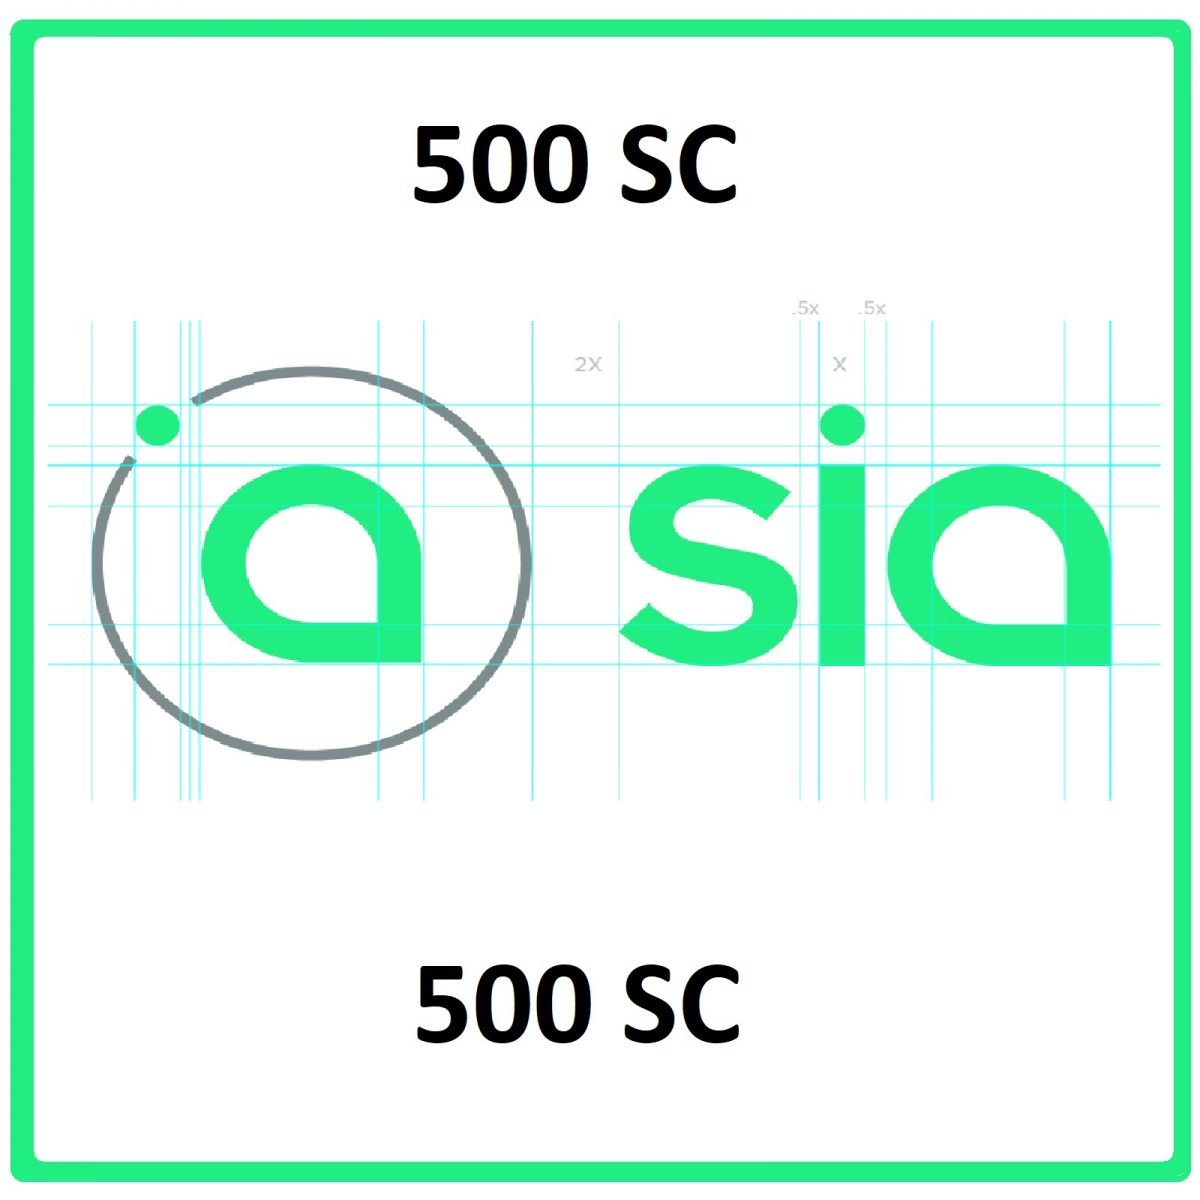 500 Siacoin Mining Contract